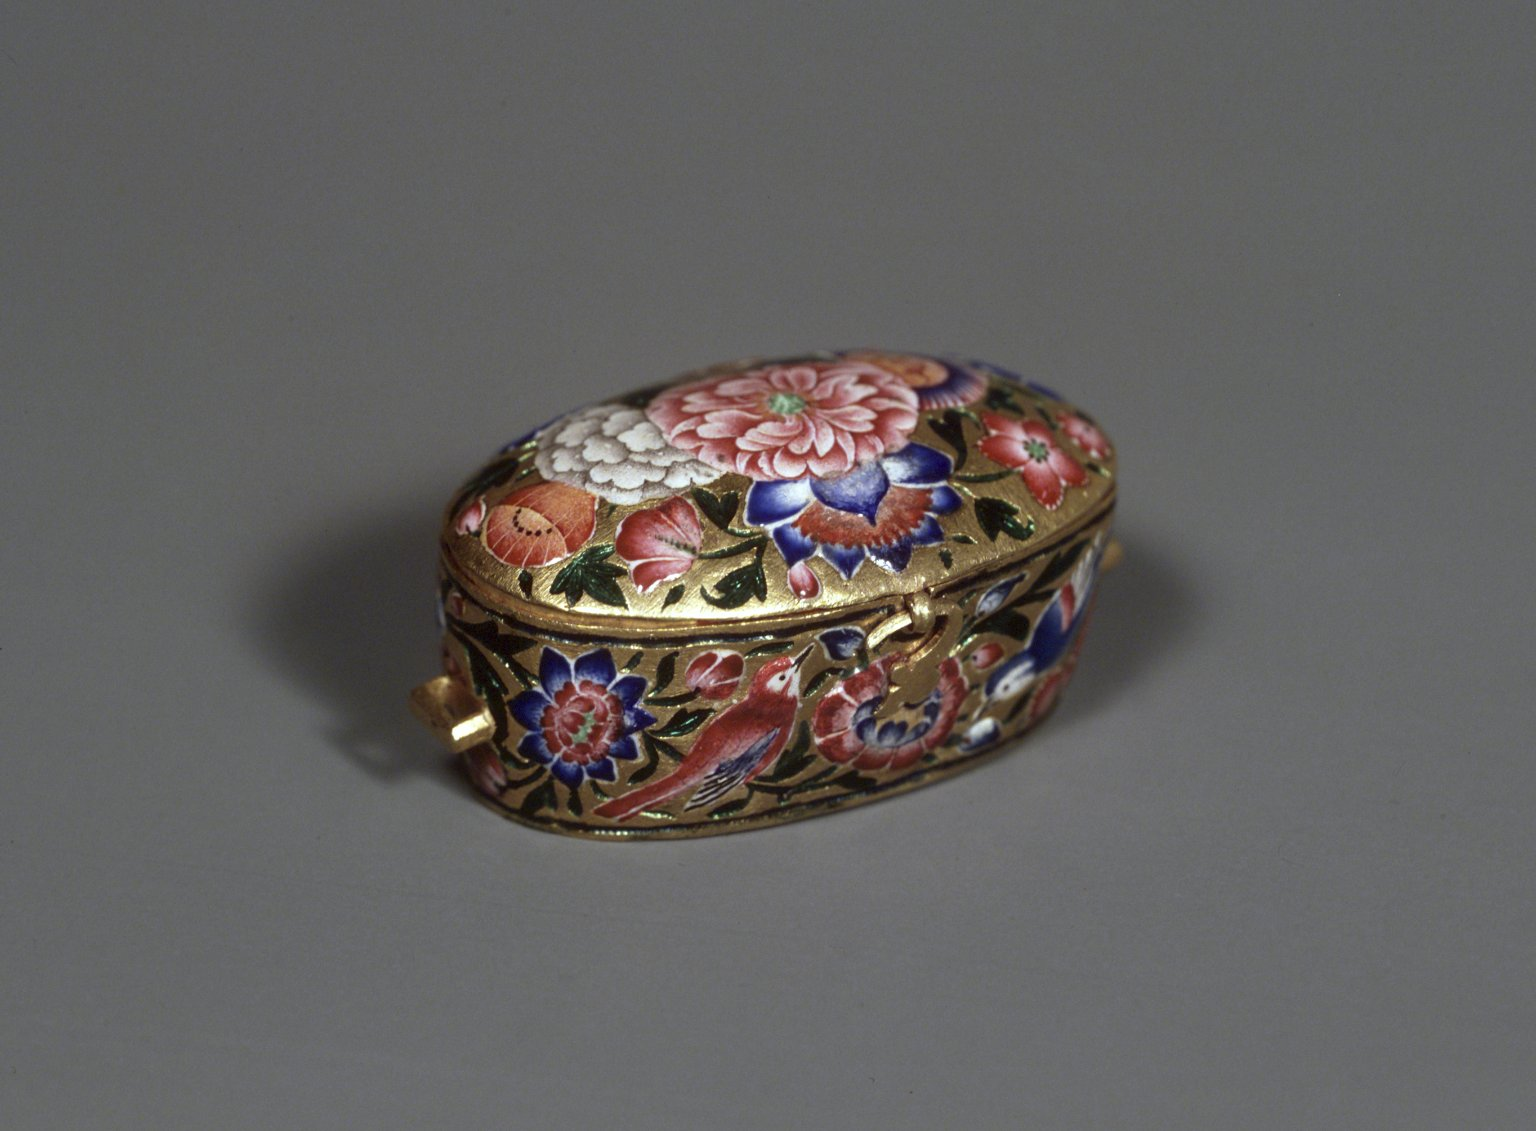 Amulet Box, 19th century. Gold, polychrome enamel, and repoussé decoration, 7/8 x 1 7/8 in., 0.1 lb. (2.3 x 4.8 cm). Image: Brooklyn Museum